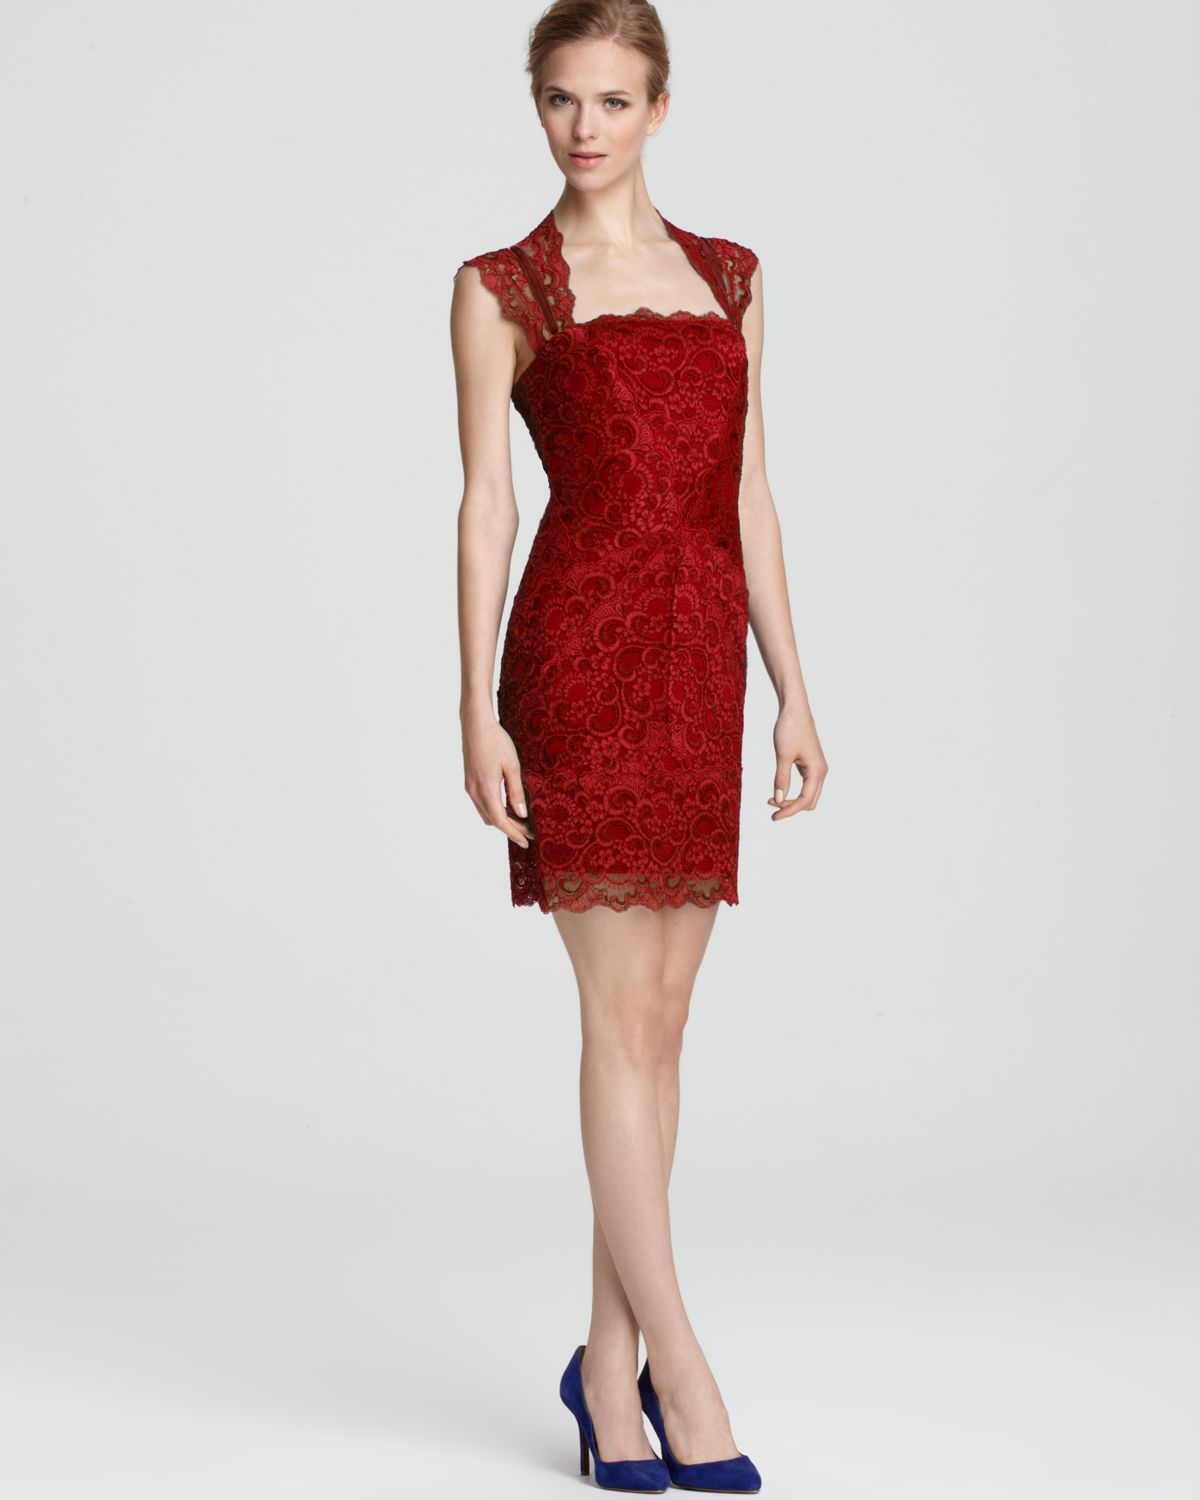 Nicole Miller Dress Stretch Lace Short Open Back in Red  Lyst